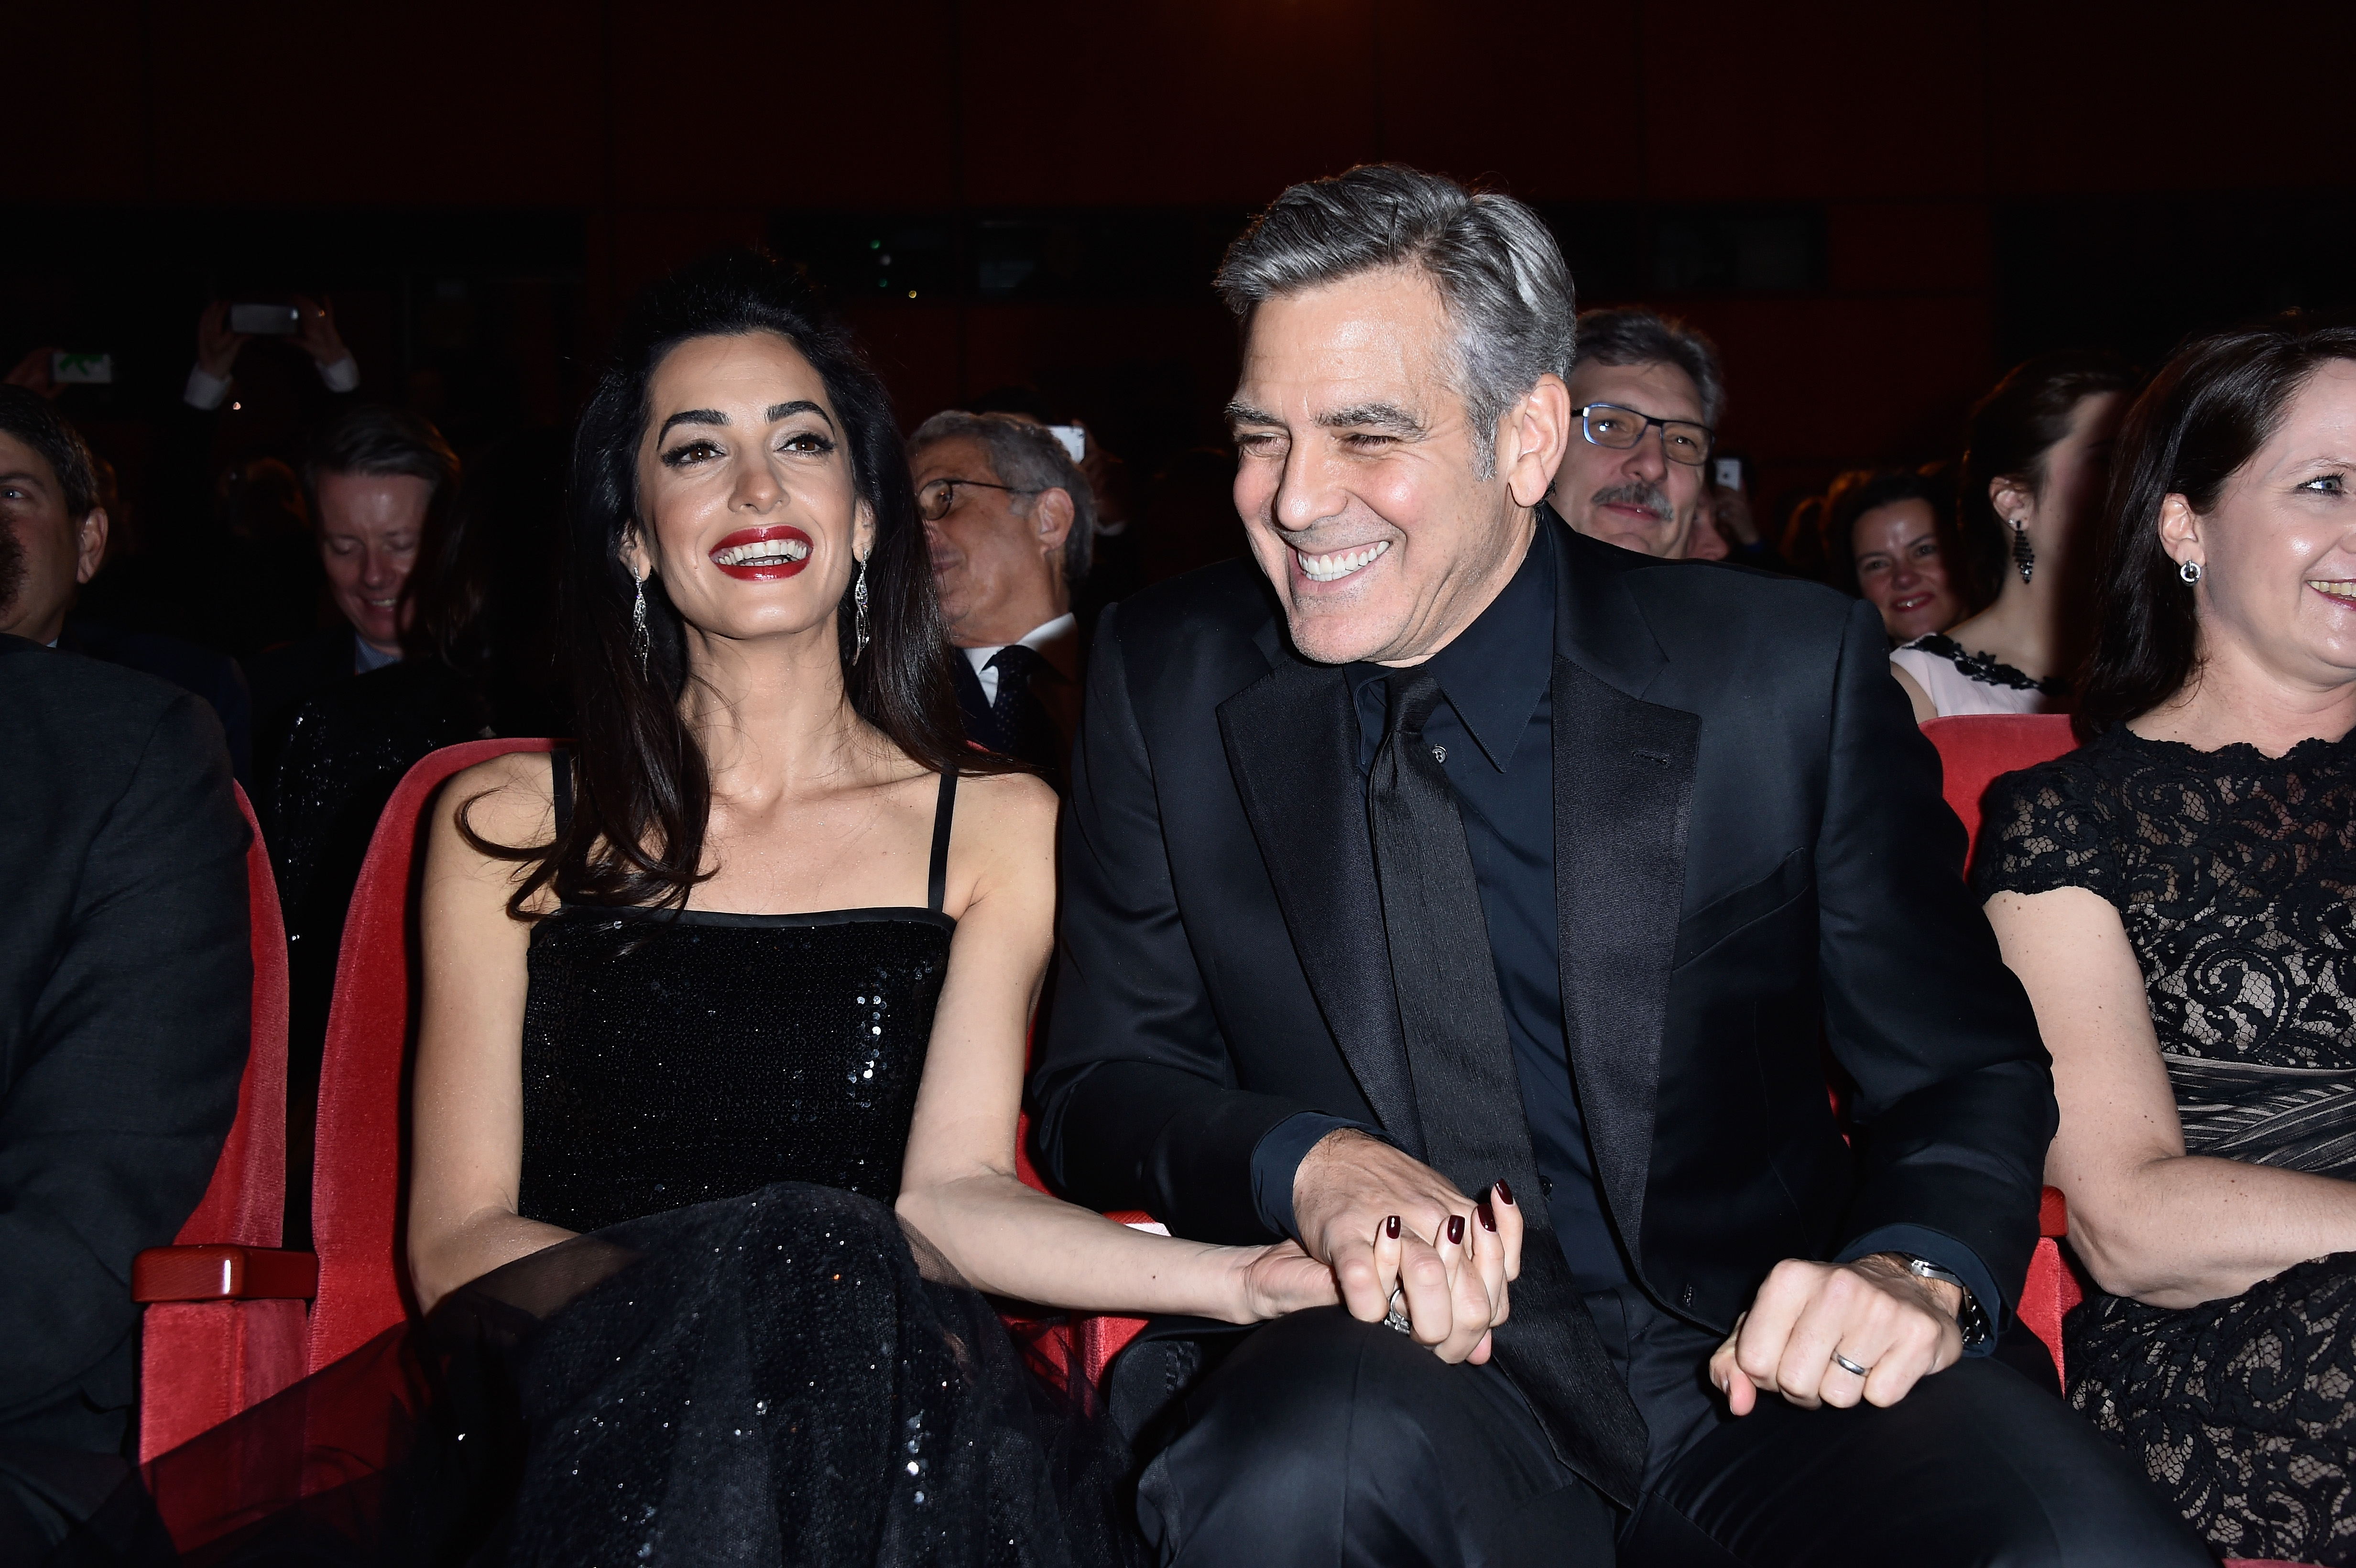 George Clooney and his wife Amal attend the premier of Hail, Caesar! during the Berlin International Film Festival on Feb. 11, 2016, in Berlin